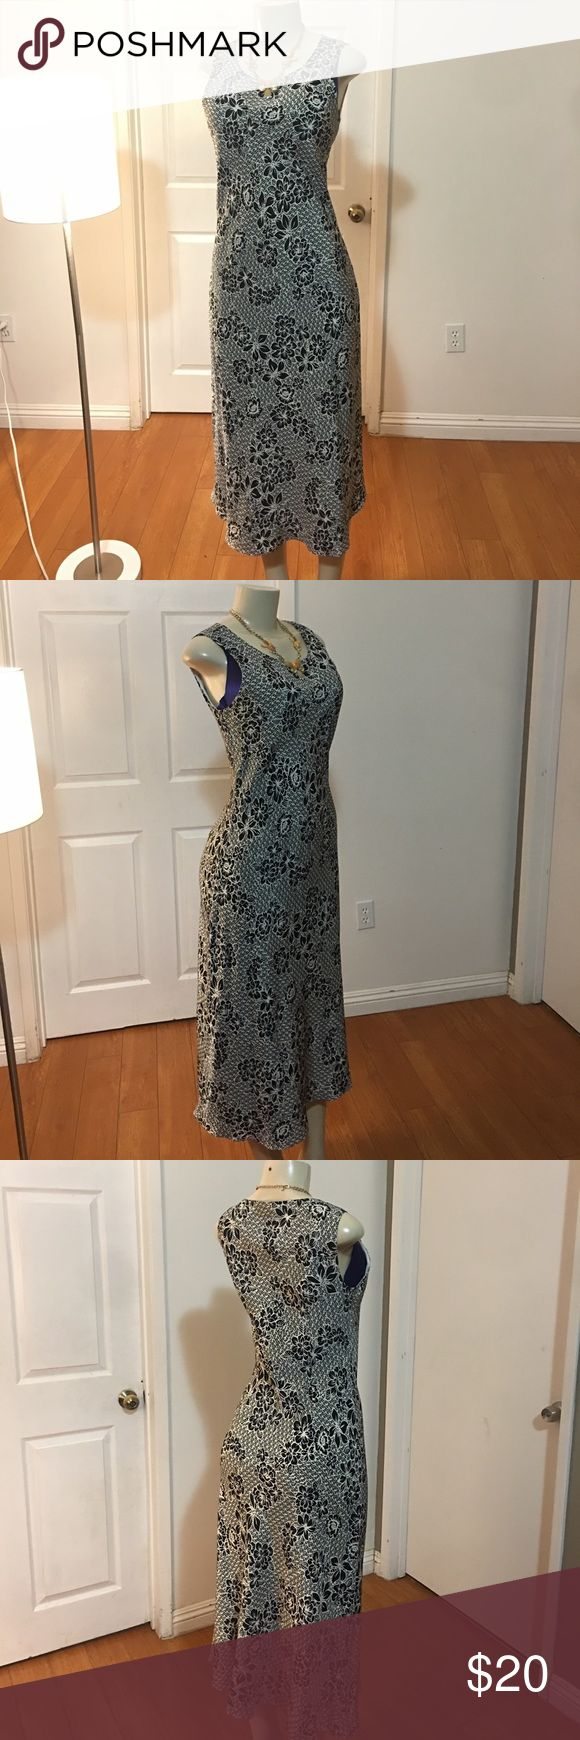 Silk Beautiful Vintage Dress Excellent condition. Fully lined. Beautiful mermaid cut. Measurements: length 46 inches, chest 17.5 inches, waist 16 inches Charter Club Dresses Midi